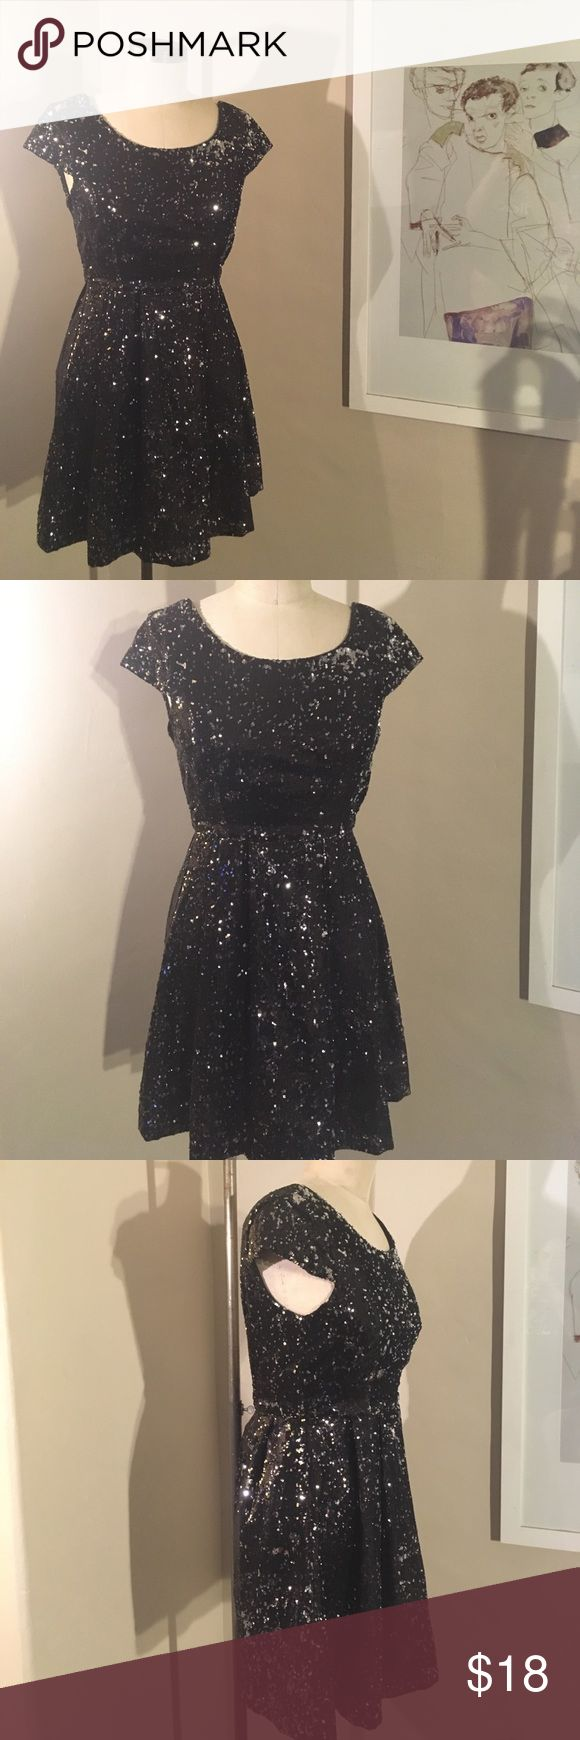 Sequined Open-Back Dress Super sparkly sequined black dress. This little number is perfect for a night out. Sequins are in good condition. It's a Forever 21 dress so it does run a little short and small. Only worn once. Forever 21 Dresses Backless